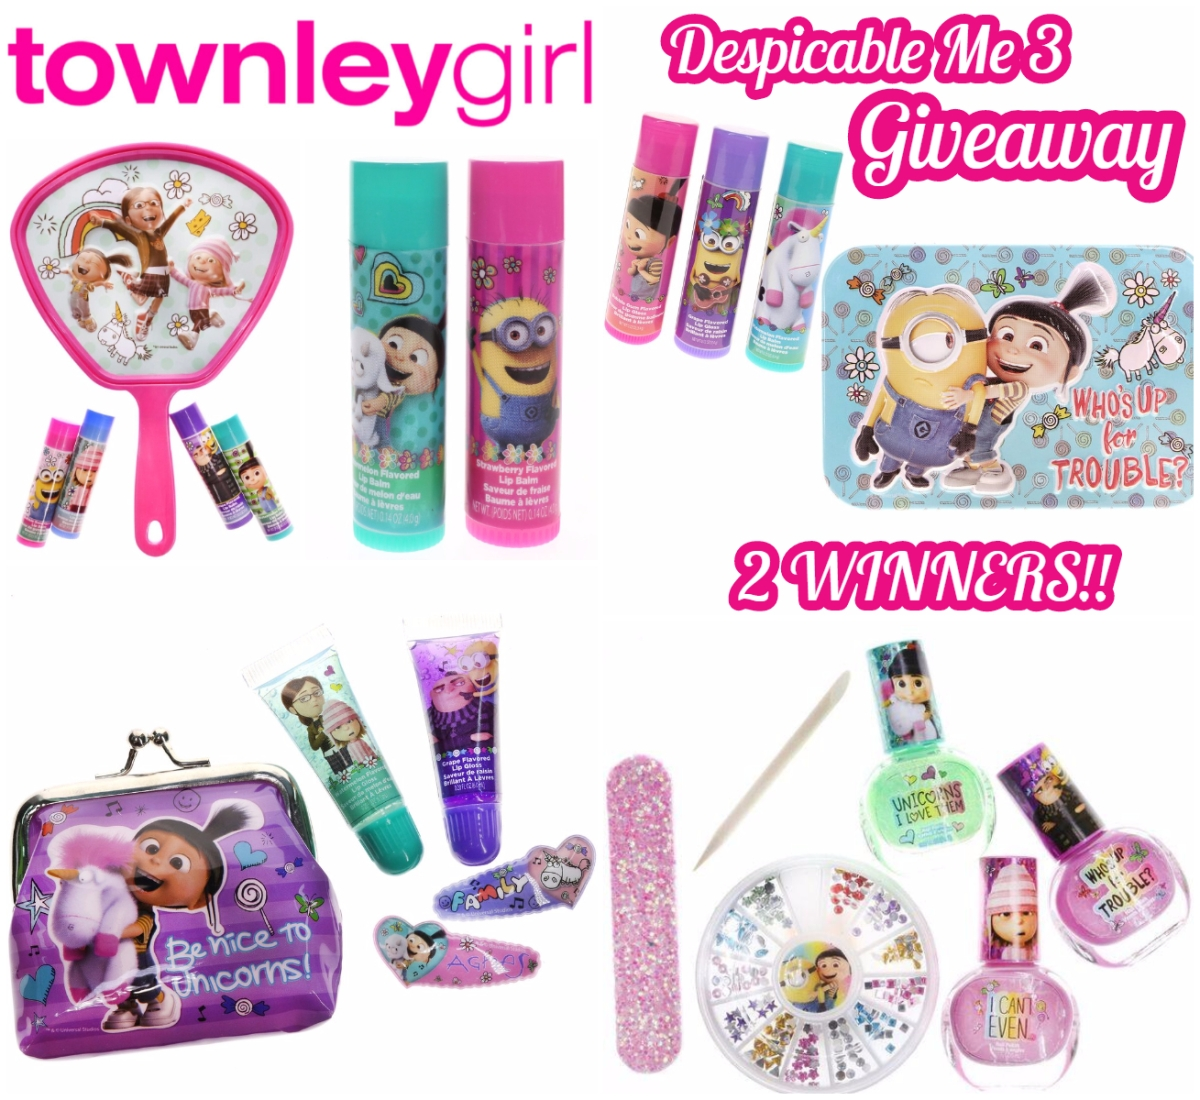 Back To School Beauty Giveaway From TownleyGirl and